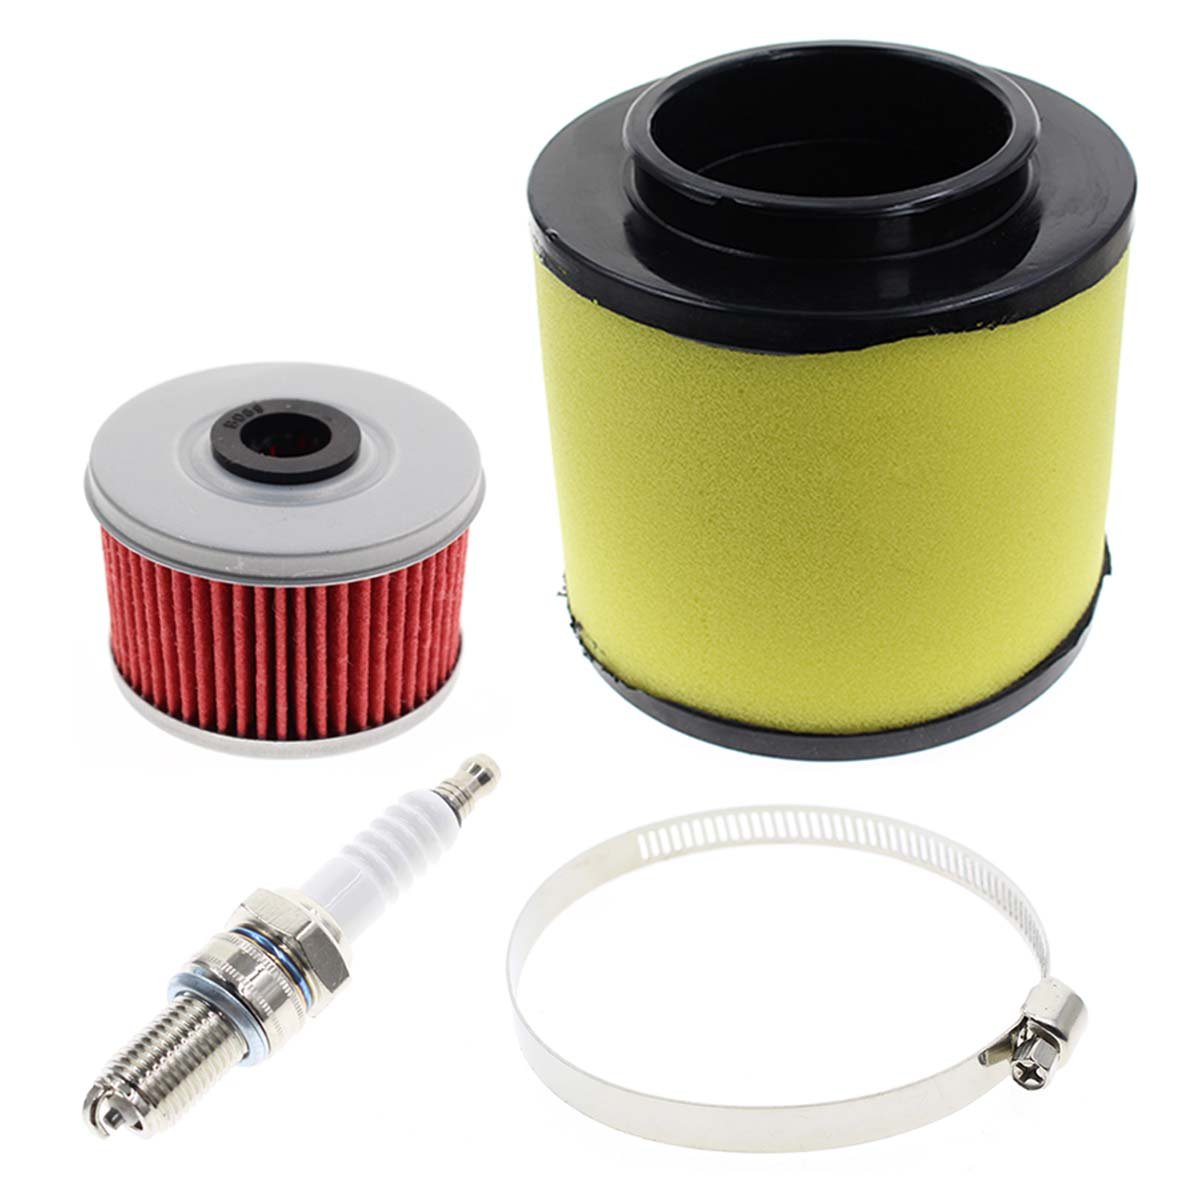 AUTOKAY Air Filter Tune Up Kit for Honda ATV TRX250 TRX250TE Recon TRX250EX TRX250X RECON 250 17254-HM8-000 by AUTOKAY